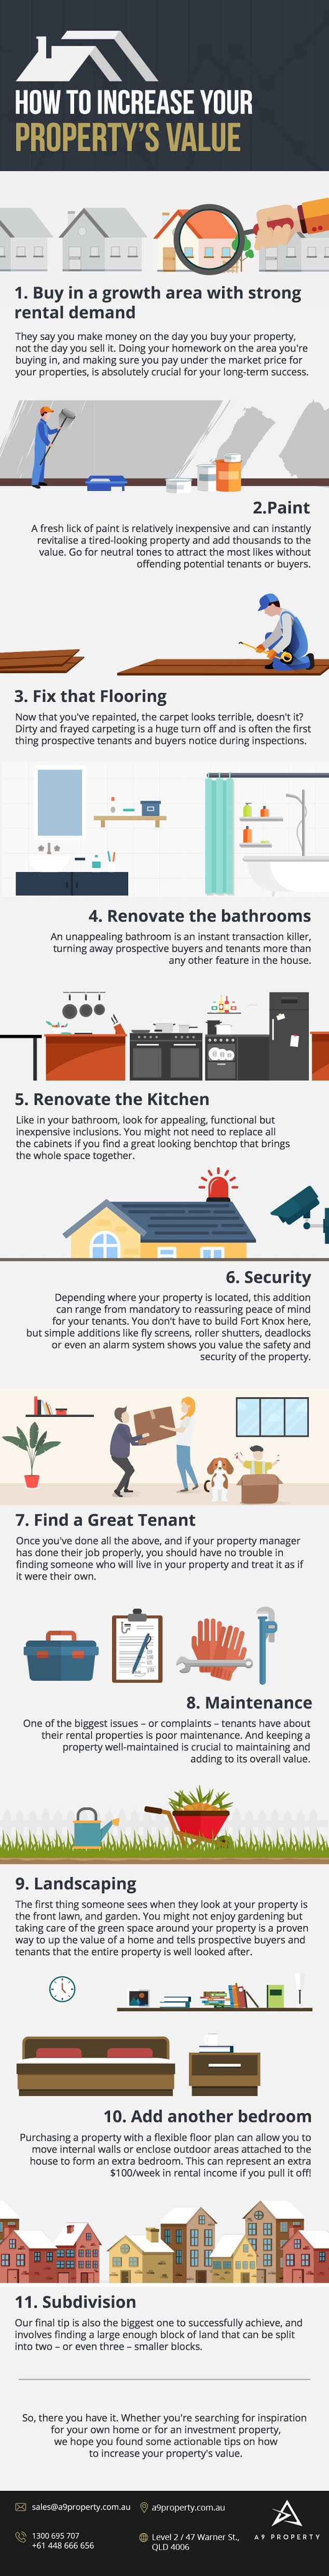 How to Increase your Property